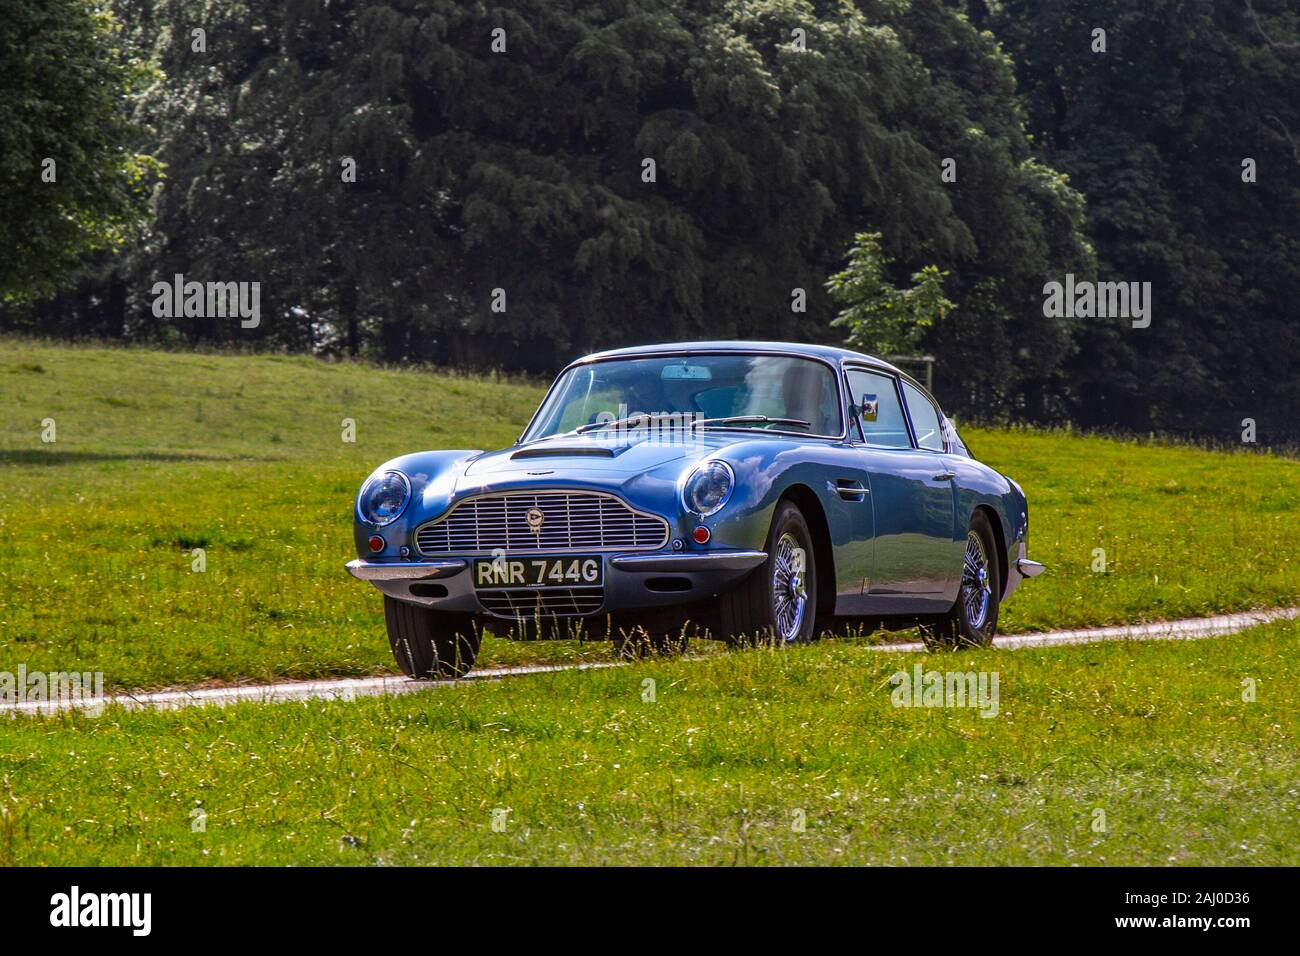 1969 Blue Aston Martin Db6 Classic Cars Historics Cherished Old Timers Collectable Restored Vintage Veteran Vehicles